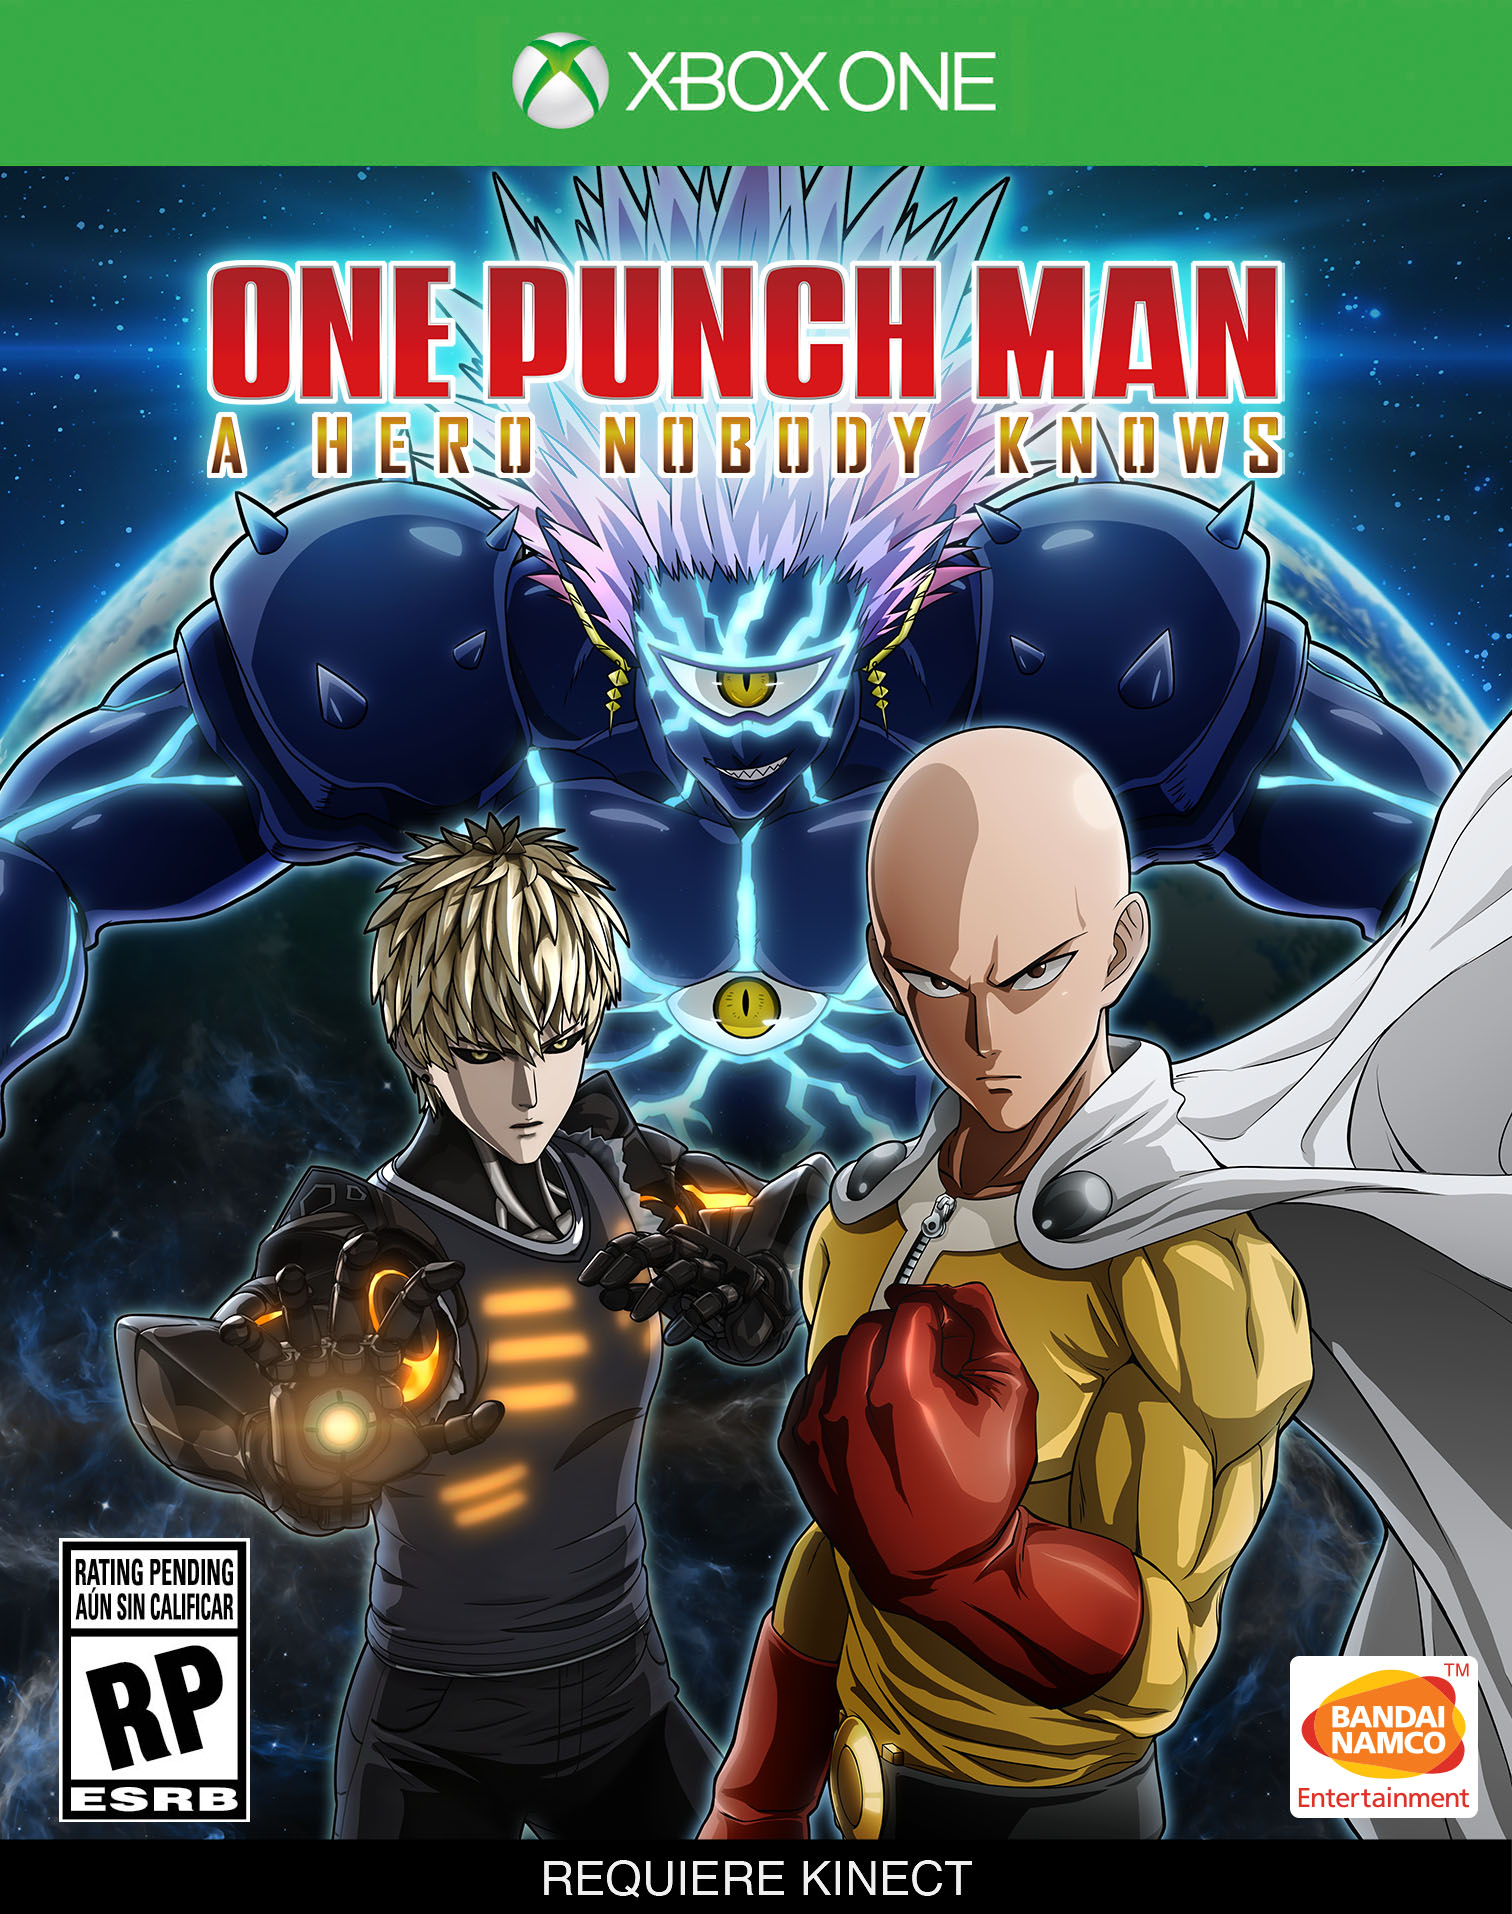 Бокс-арт (Xbox One) - One Punch Man: A Hero Nobody Knows